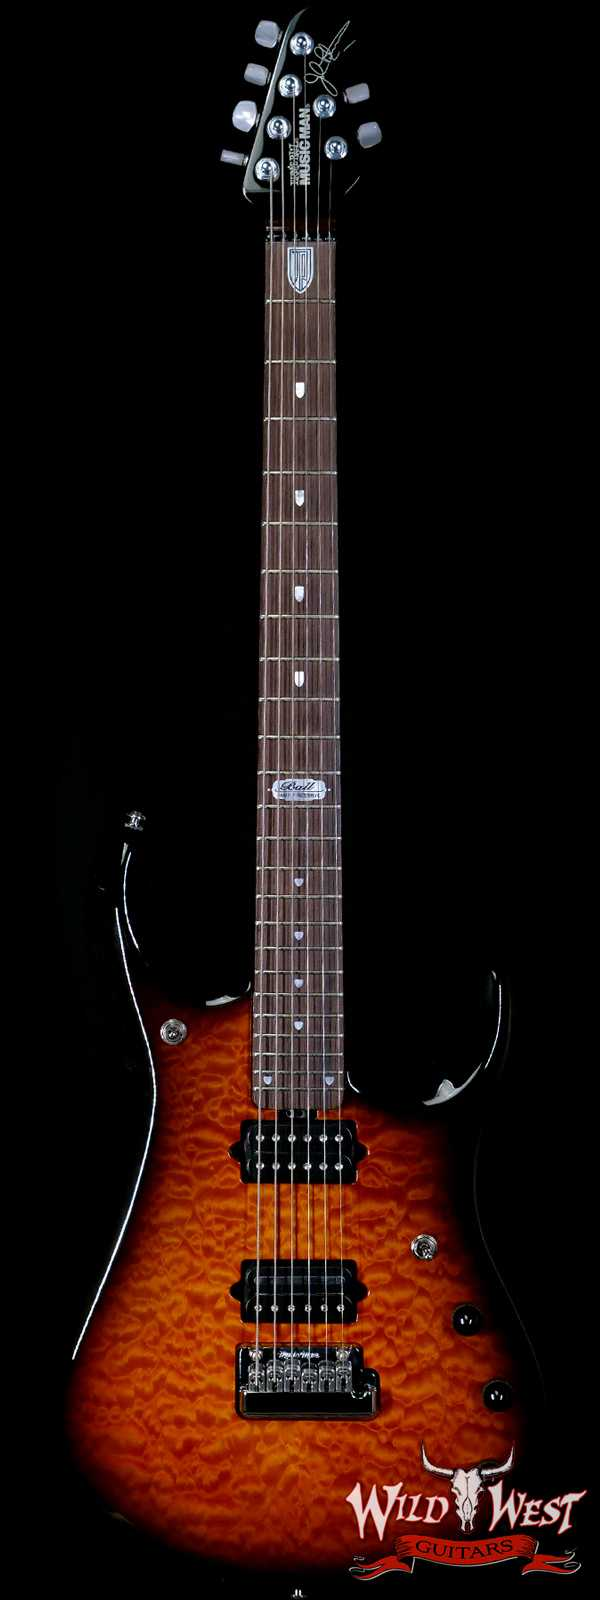 2009 Ernie Ball Music Man BFR JP-6 Baritone Quilt Maple Top Tobacco Sunburst Owned by John Petrucci and Kevin Shirley